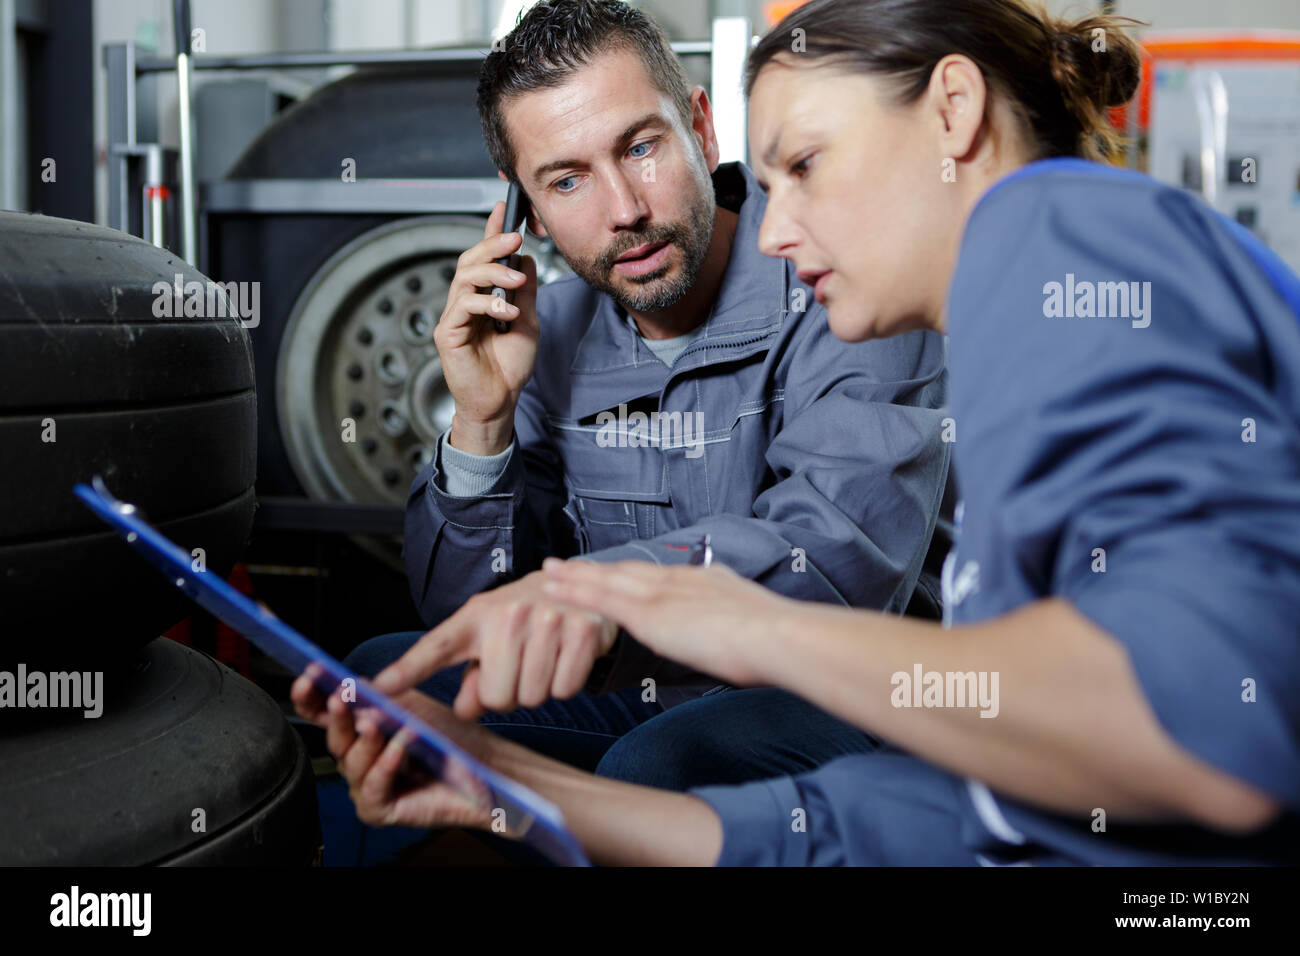 garage co-workers looking at clipboard and talking on smartphone - Stock Image